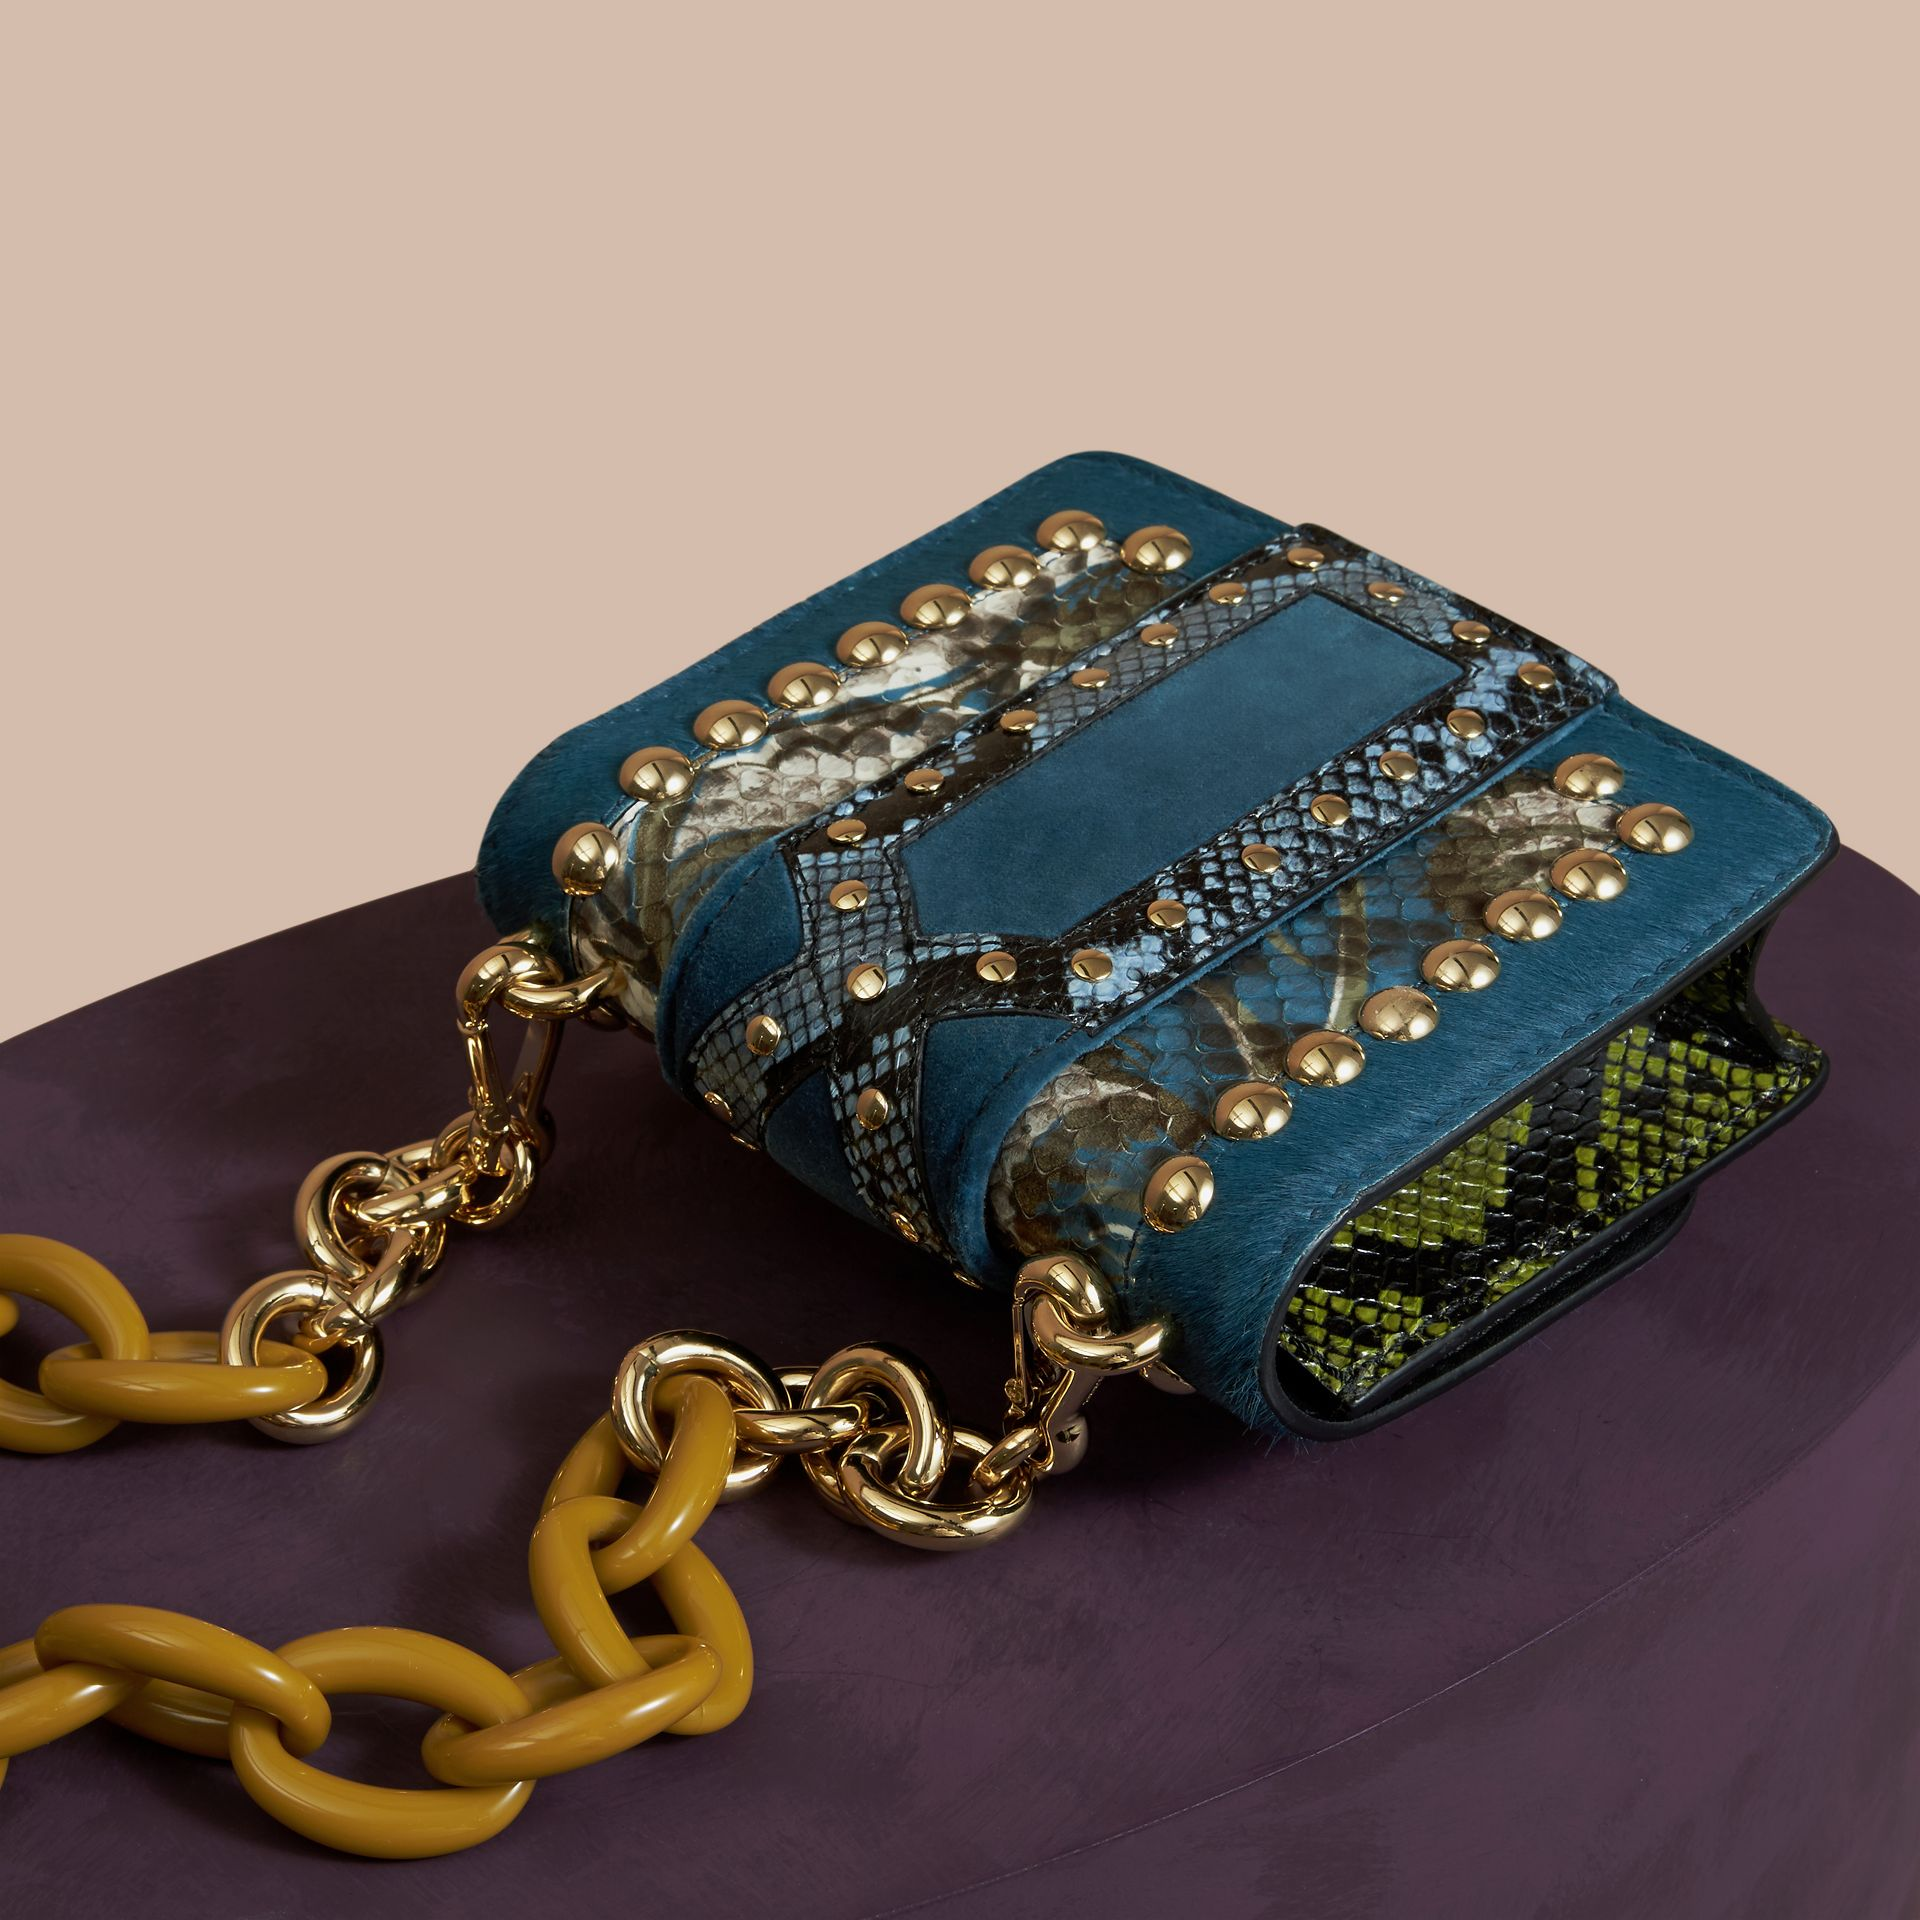 Pale opal The Mini Square Buckle Bag in Calfskin, Snakeskin and Velvet Pale Opal - gallery image 4